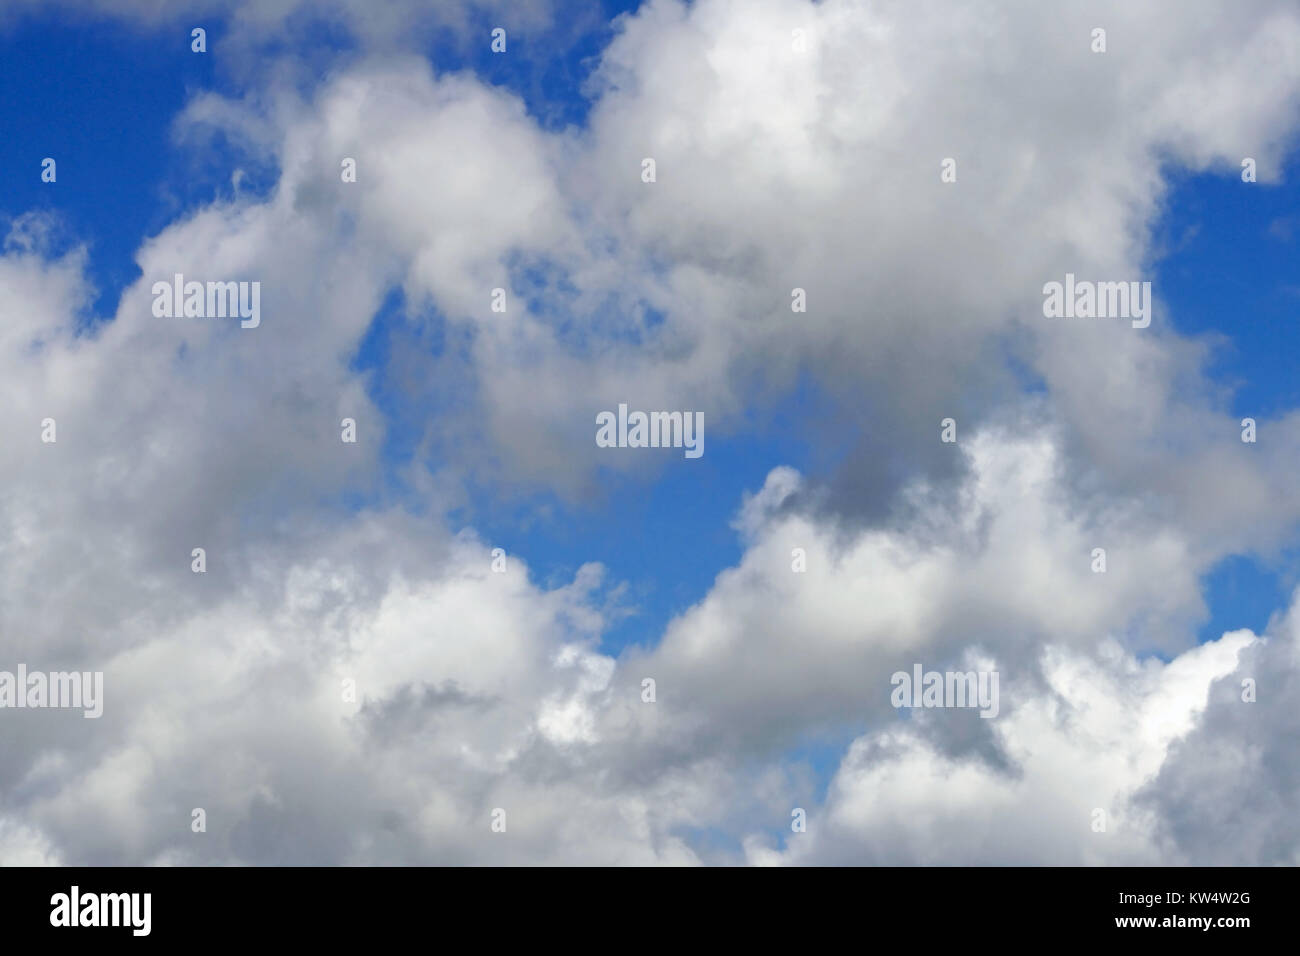 White fluffy clouds in a bright blue sky - Stock Image